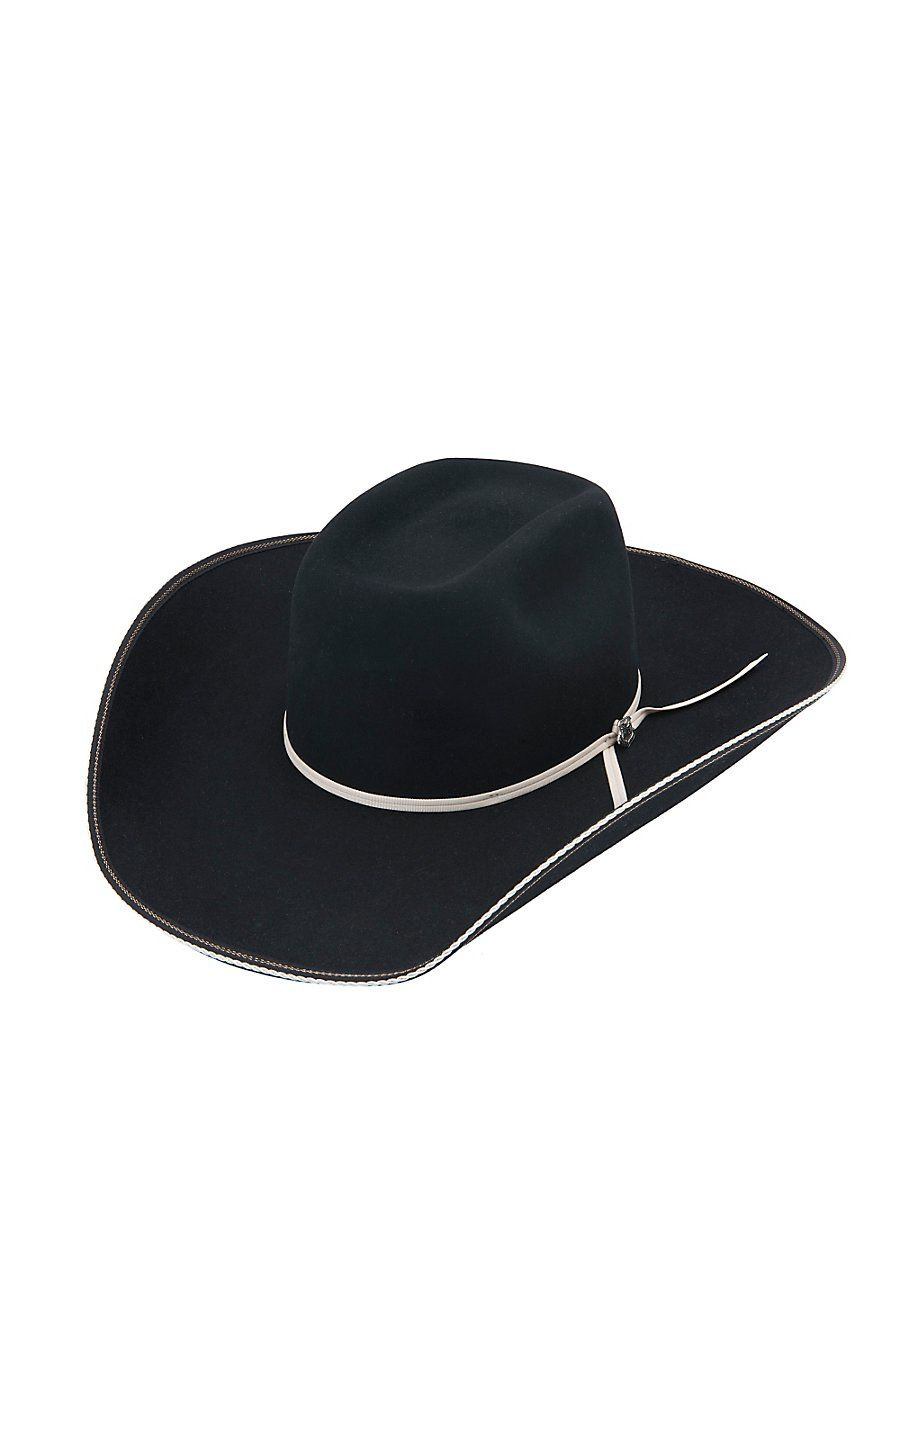 04a38cb0d426d Resistol 4X Snake Eyes Black Brick Felt Cowboy Hat in 2019